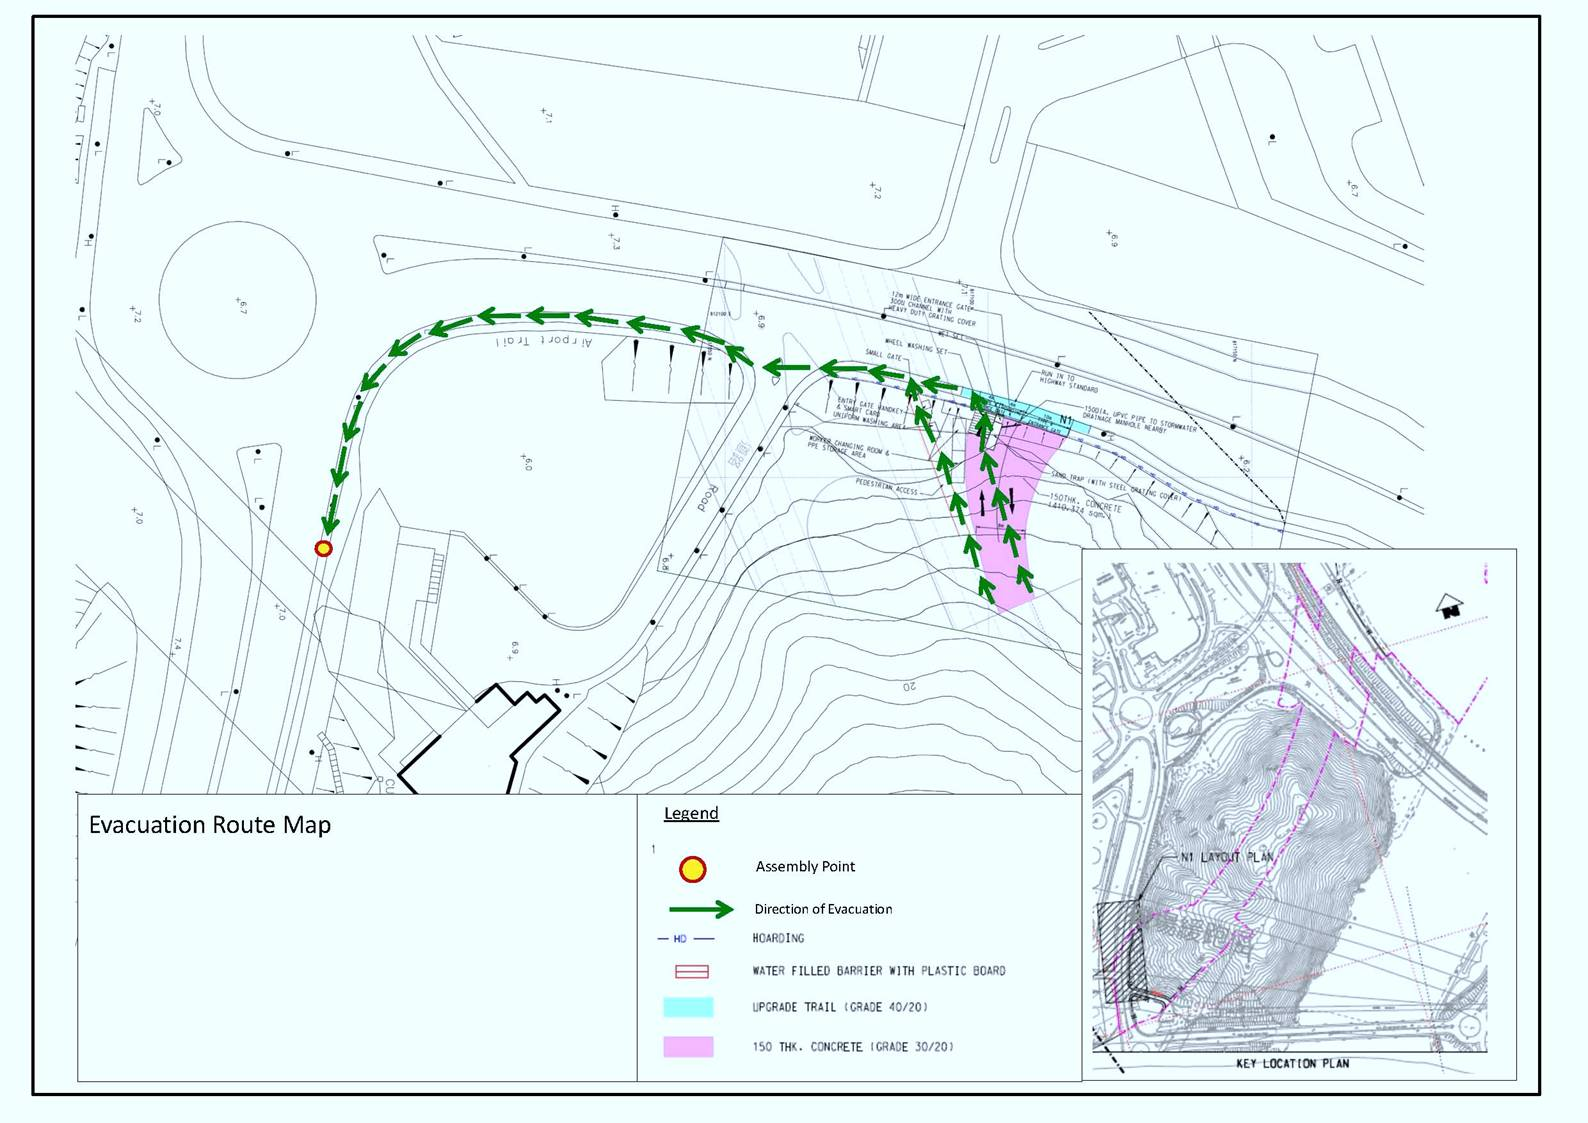 Construction site emergency evacuation plan for for Plan construction